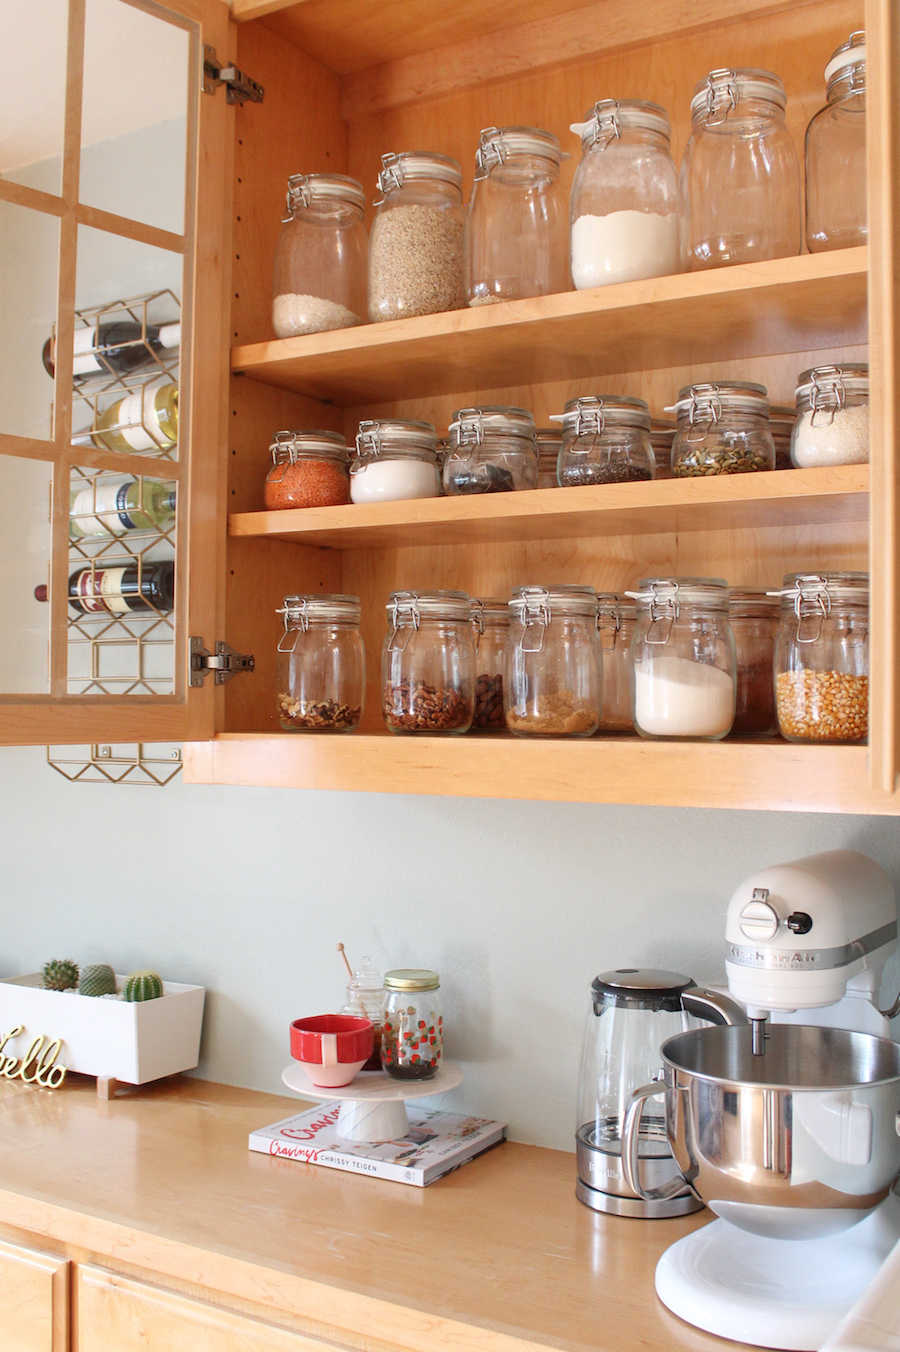 styling-shelves-kitchen-3.jpg